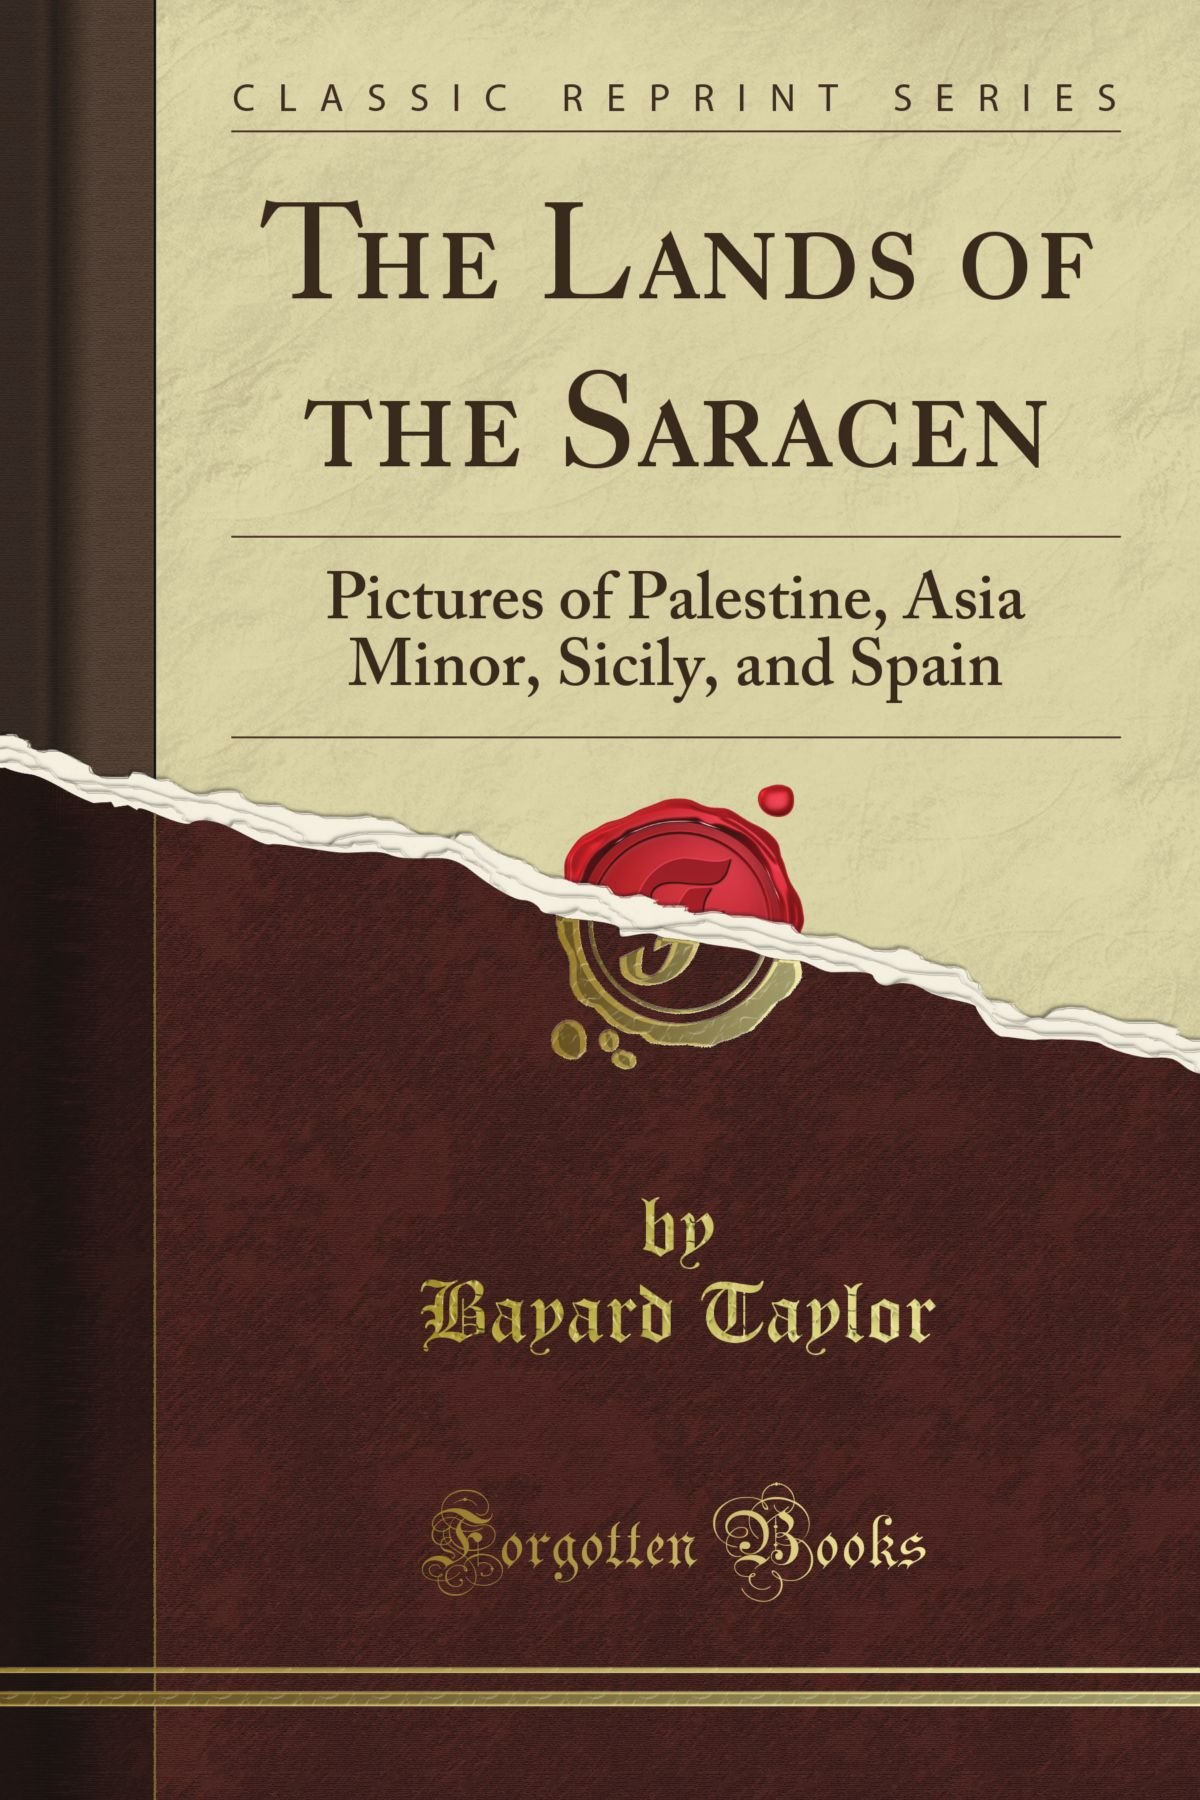 The Lands of the Saracen: Pictures of Palestine, Asia Minor, Sicily, and Spain (Classic Reprint) PDF